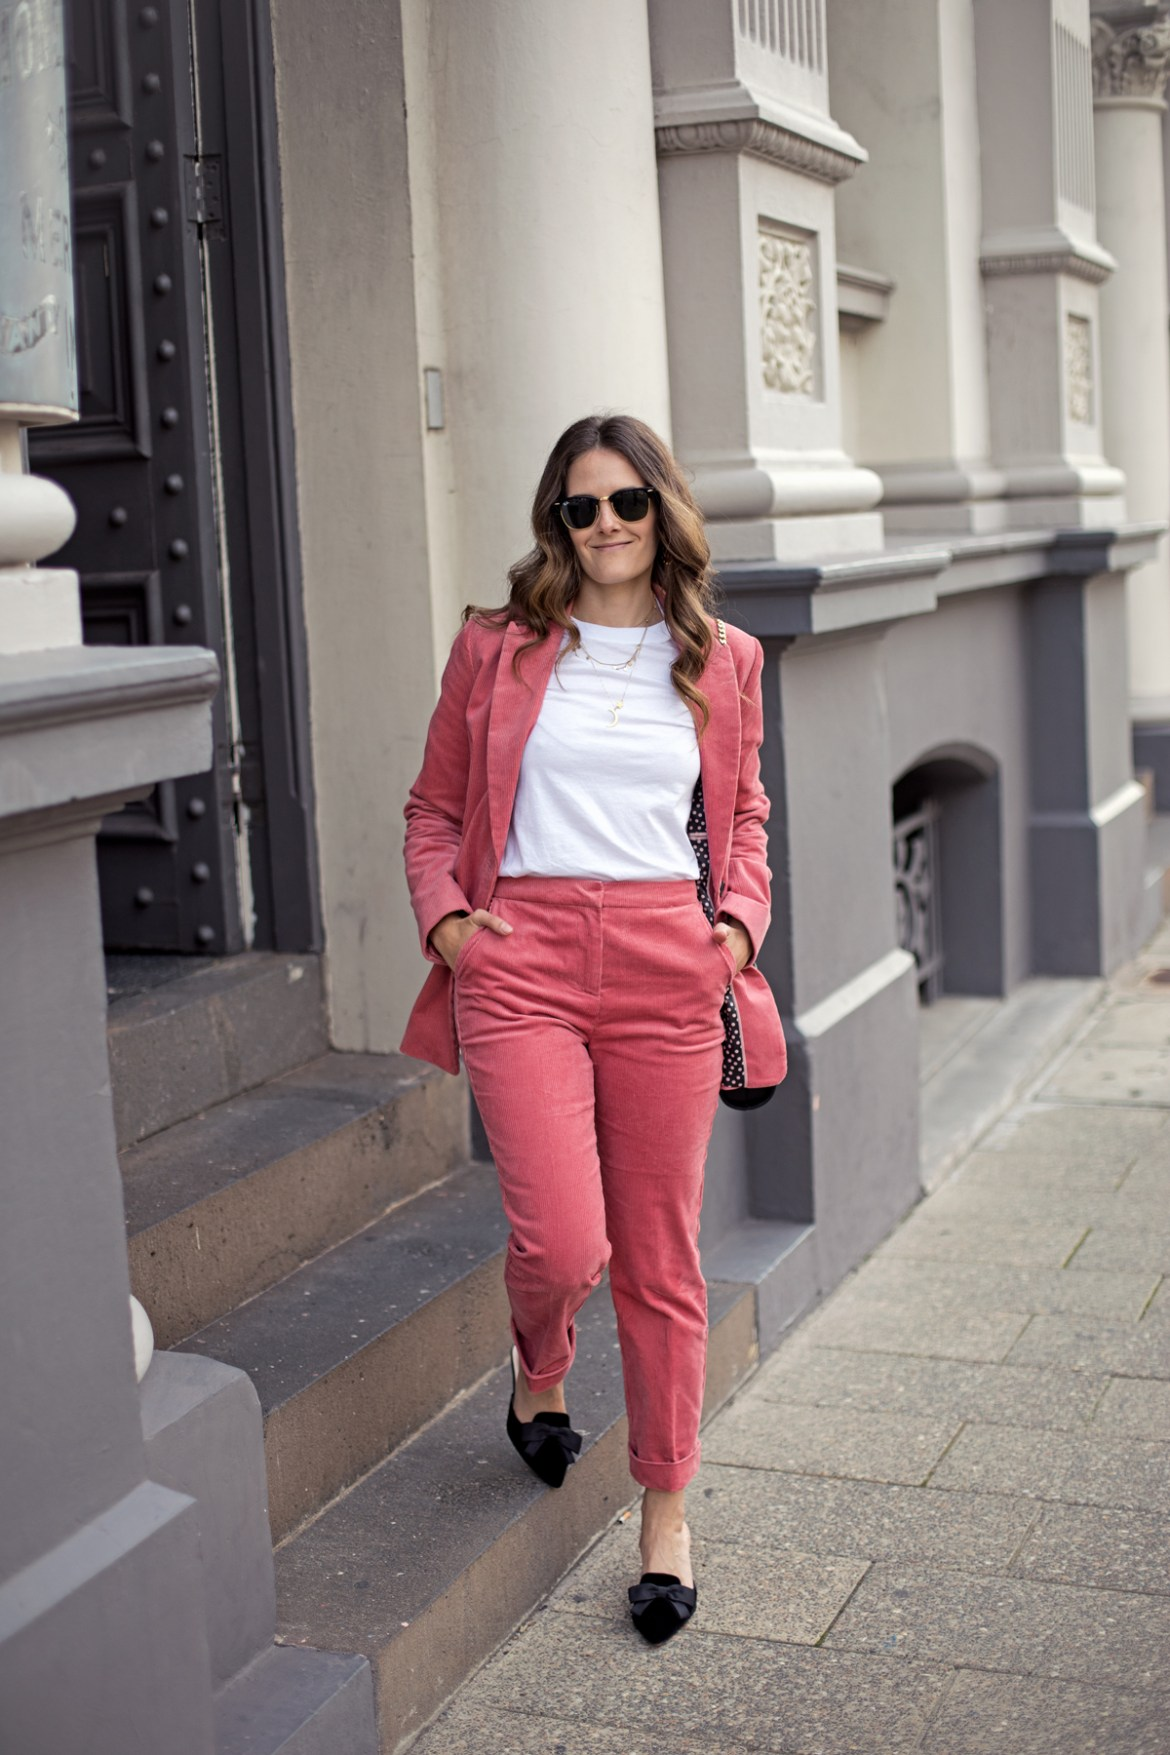 Boden Oxshott corduroy suit blazer and straight leg pants in blush pink worn by fashion blogger from Australia Jenelle Witty of Inspiring Wit